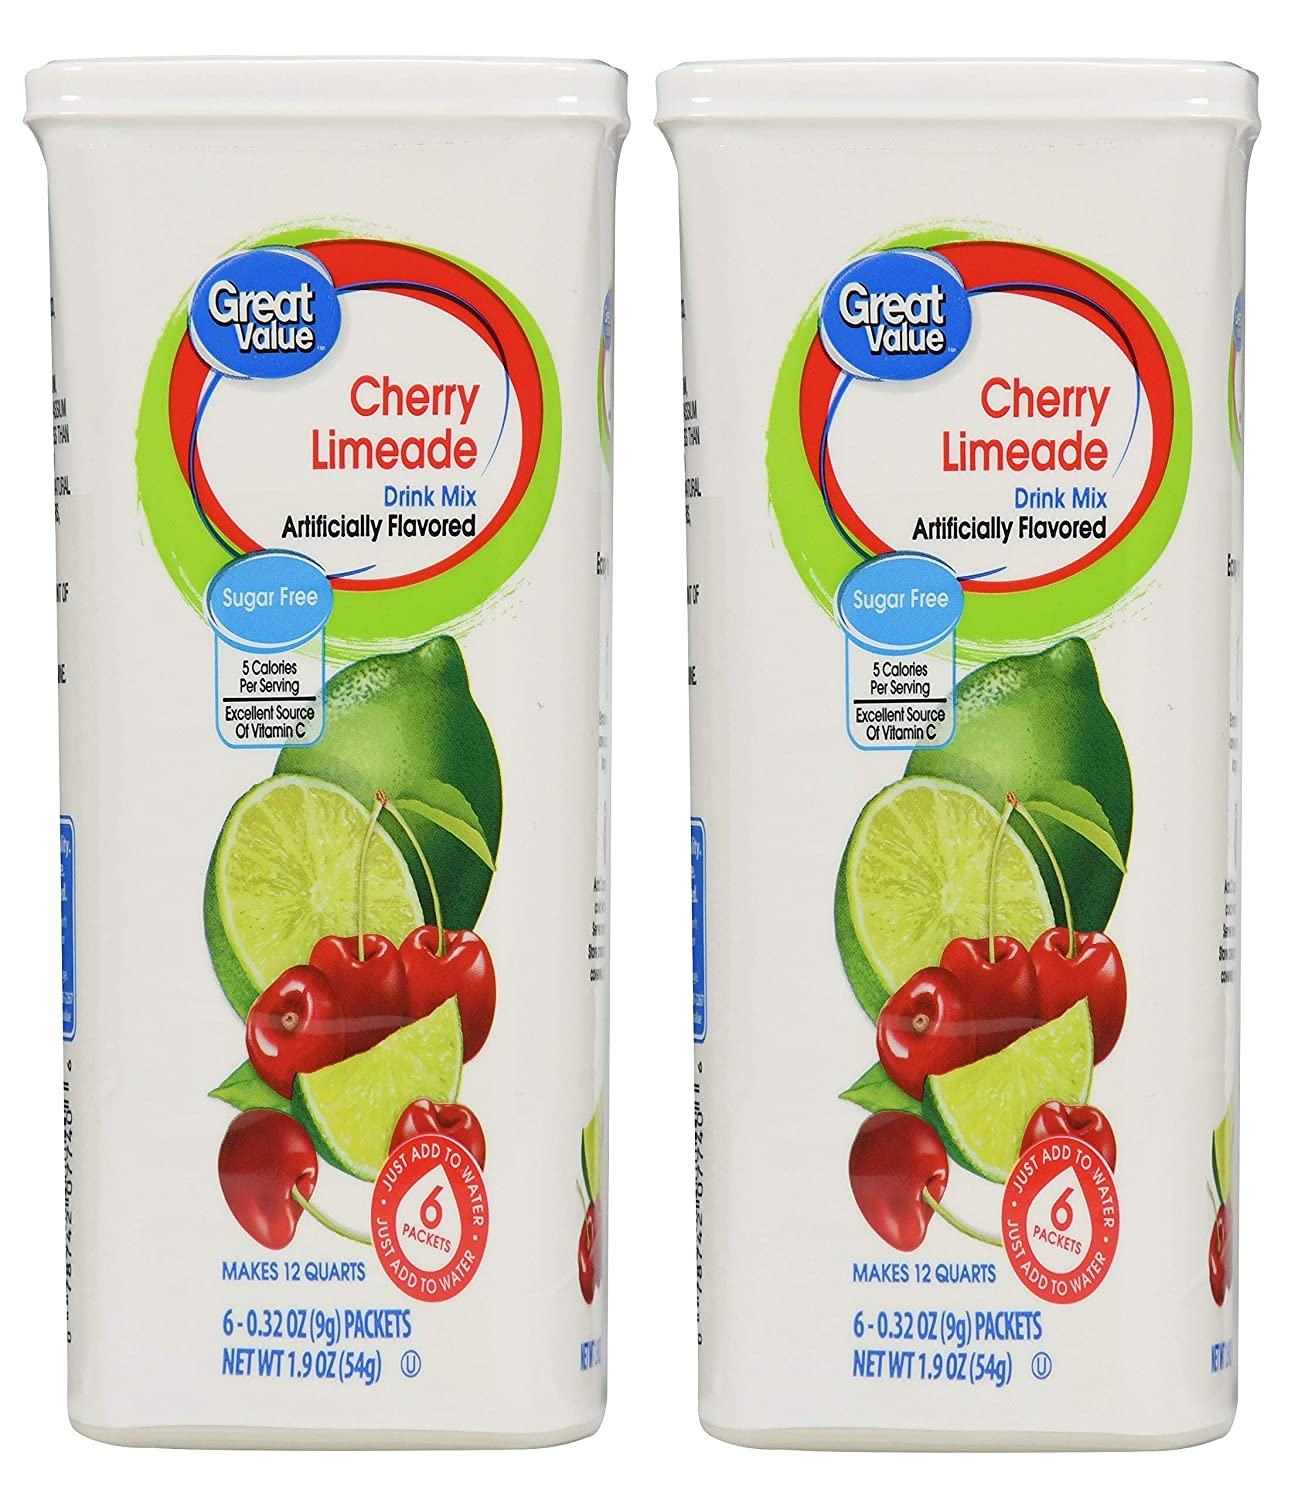 Great Value: Cherry Limeade Drink Mix, 1.9 Oz - 6 Packets (Pack of 2)